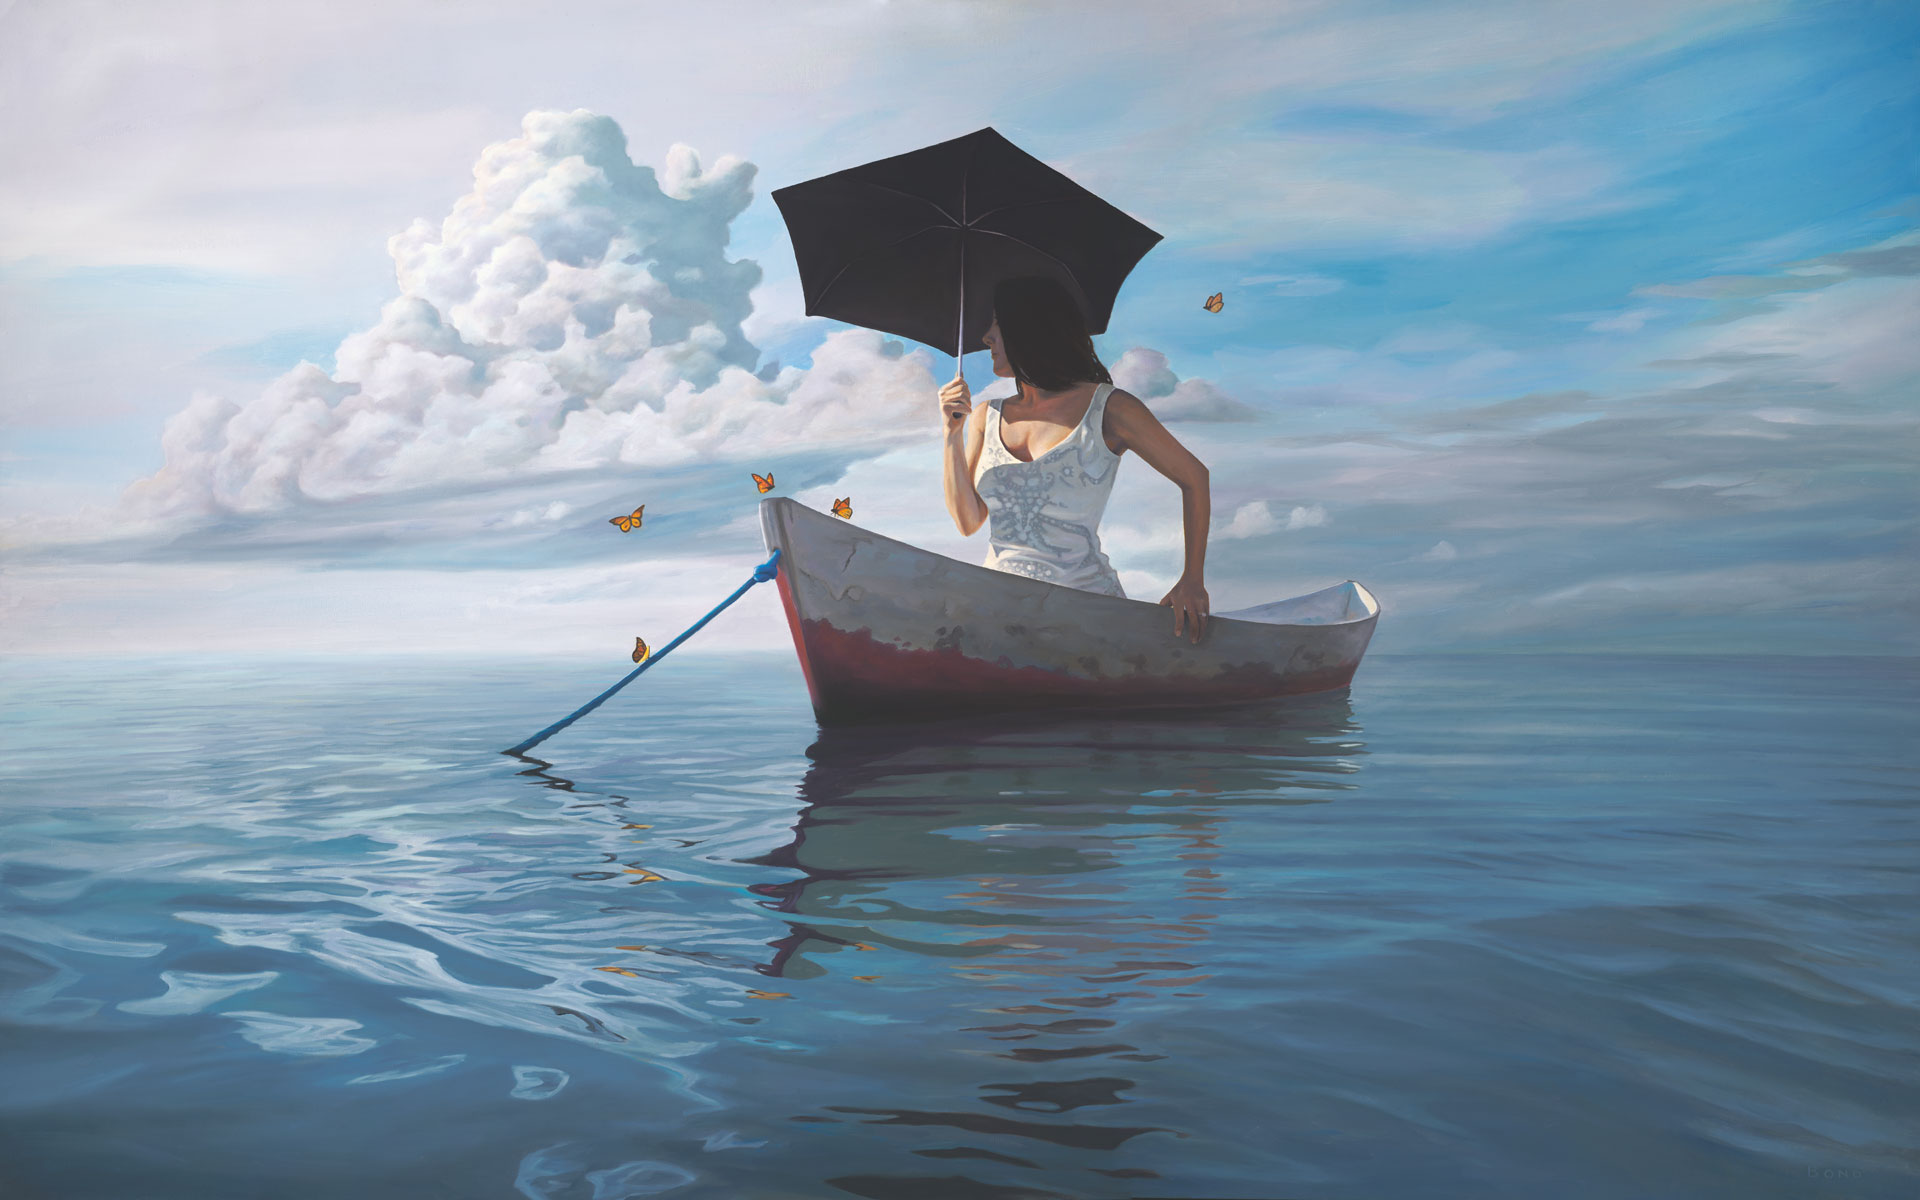 The Girl Who Married a Cloud, painting of a woman wearing a white wedding dress in row boat, art with butterflies surrounding a woman, portrait of a girl woman in a canoe boat, art with water, ocean, waves, painting of girl with umbrella, art about idealism, art about marriage and relationship, soulful uplifting inspirational art, soul stirring illusion art, romantic art,  surrealism, surreal art, dreamlike imagery, fanciful art, fantasy art, dreamscape visual, metaphysical art, spiritual painting, metaphysical painting, spiritual art, whimsical art, whimsy art, dream art, fantastic realism art, magic realism oil painting by Paul Bond